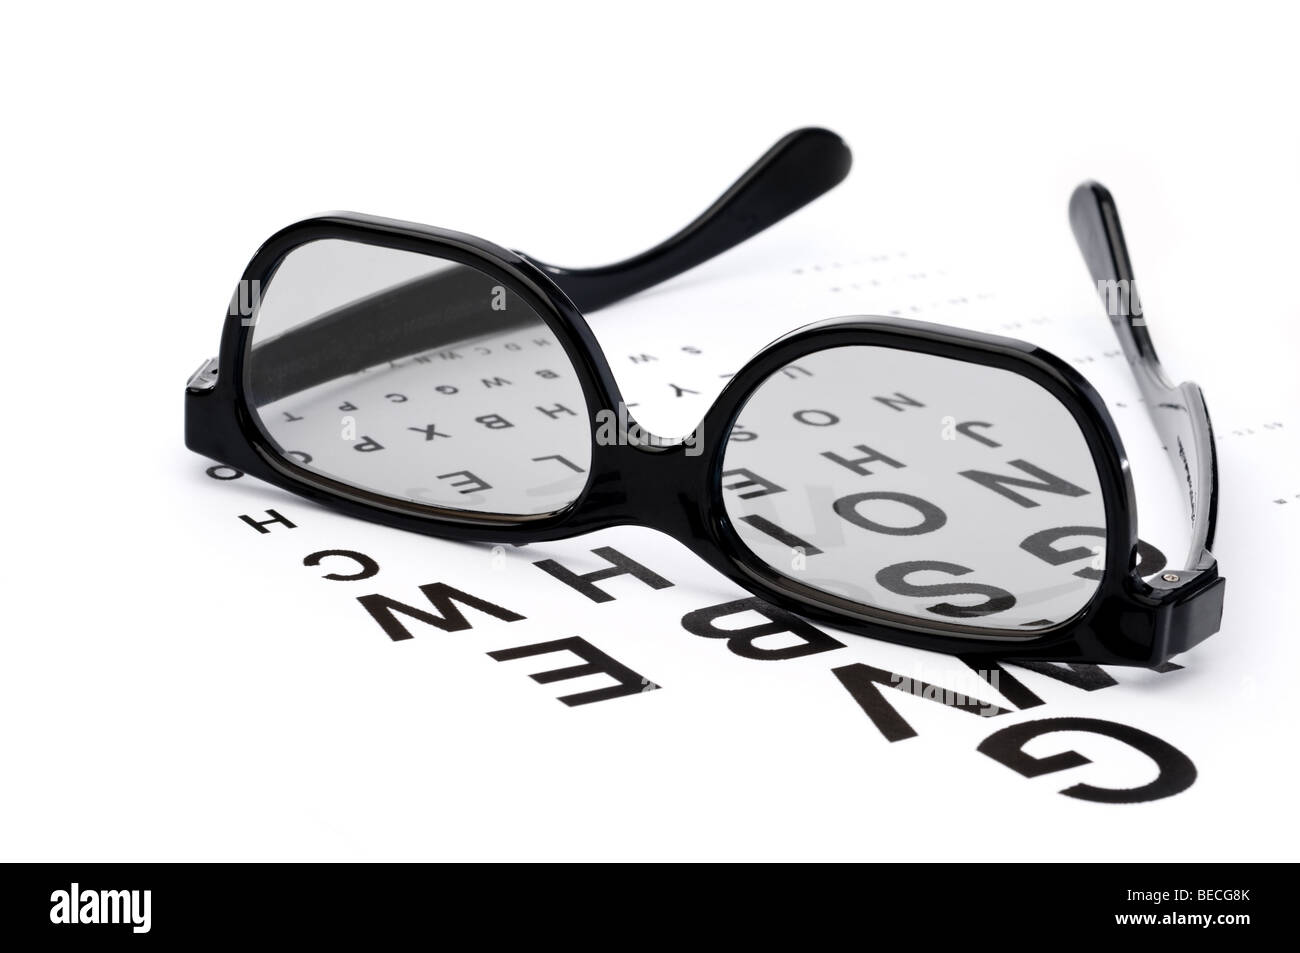 Horizontal image of eyeglasses on a eye exam chart - Stock Image